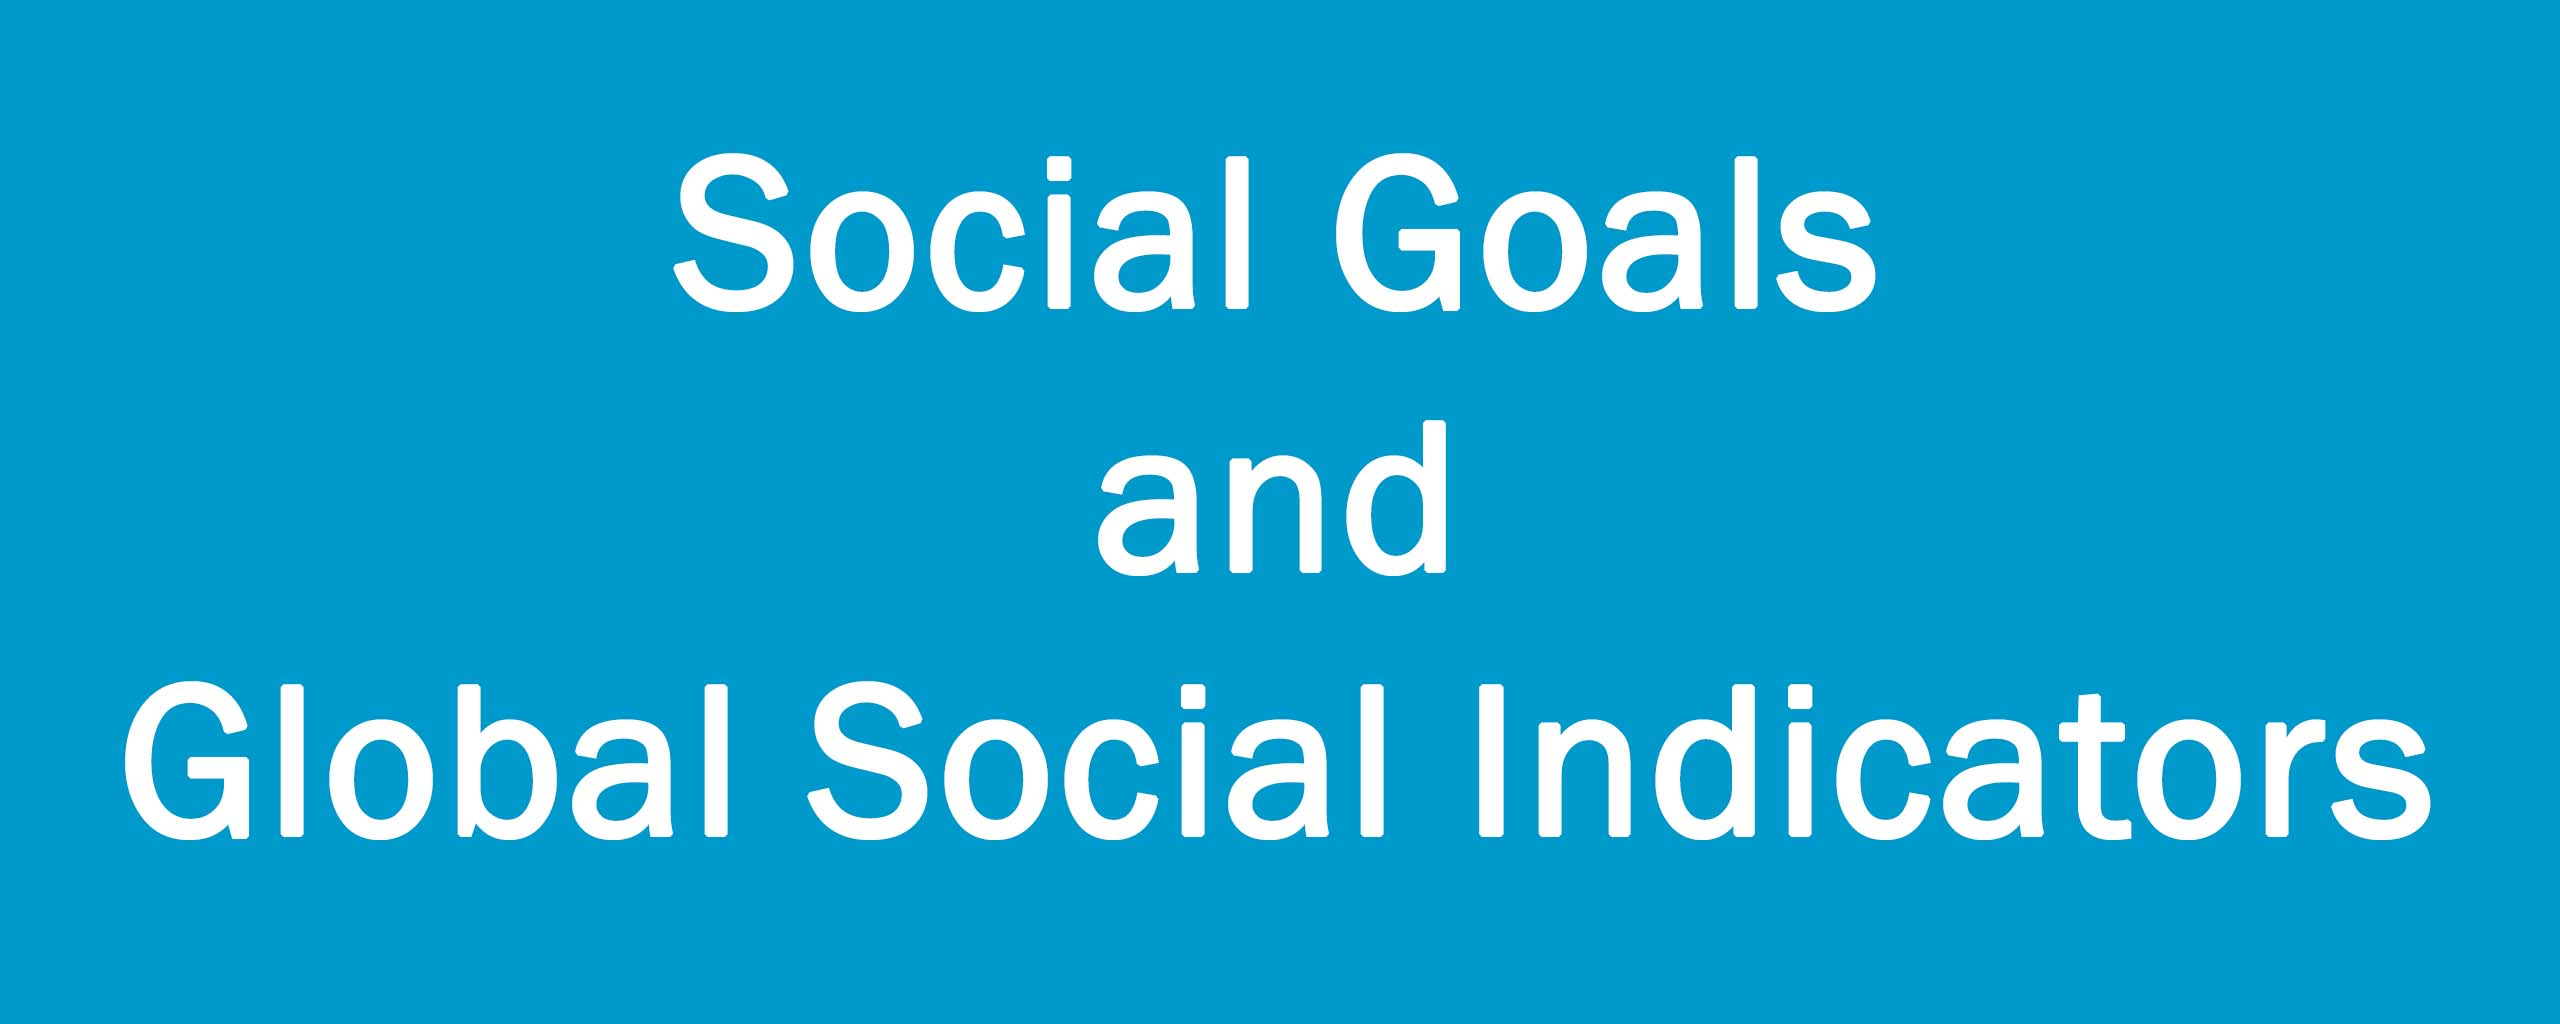 Social Goals and Global Social Indicators